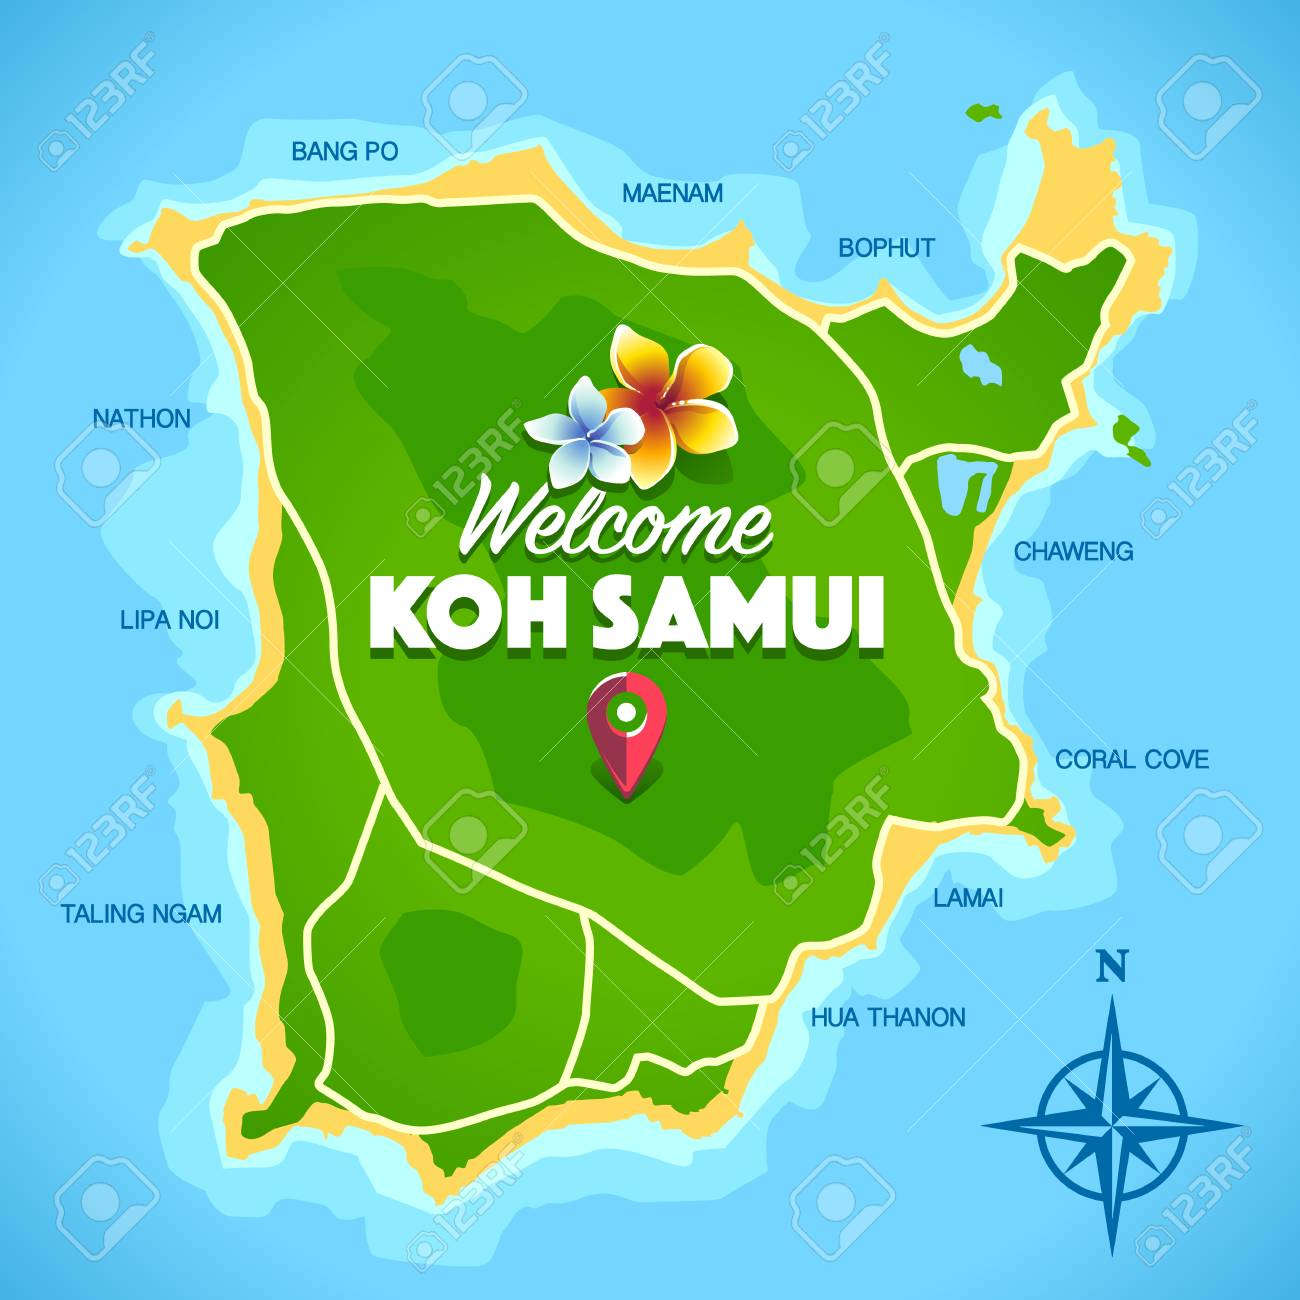 Koh Samui Thailand Island Artistic Map With Typography Welcome